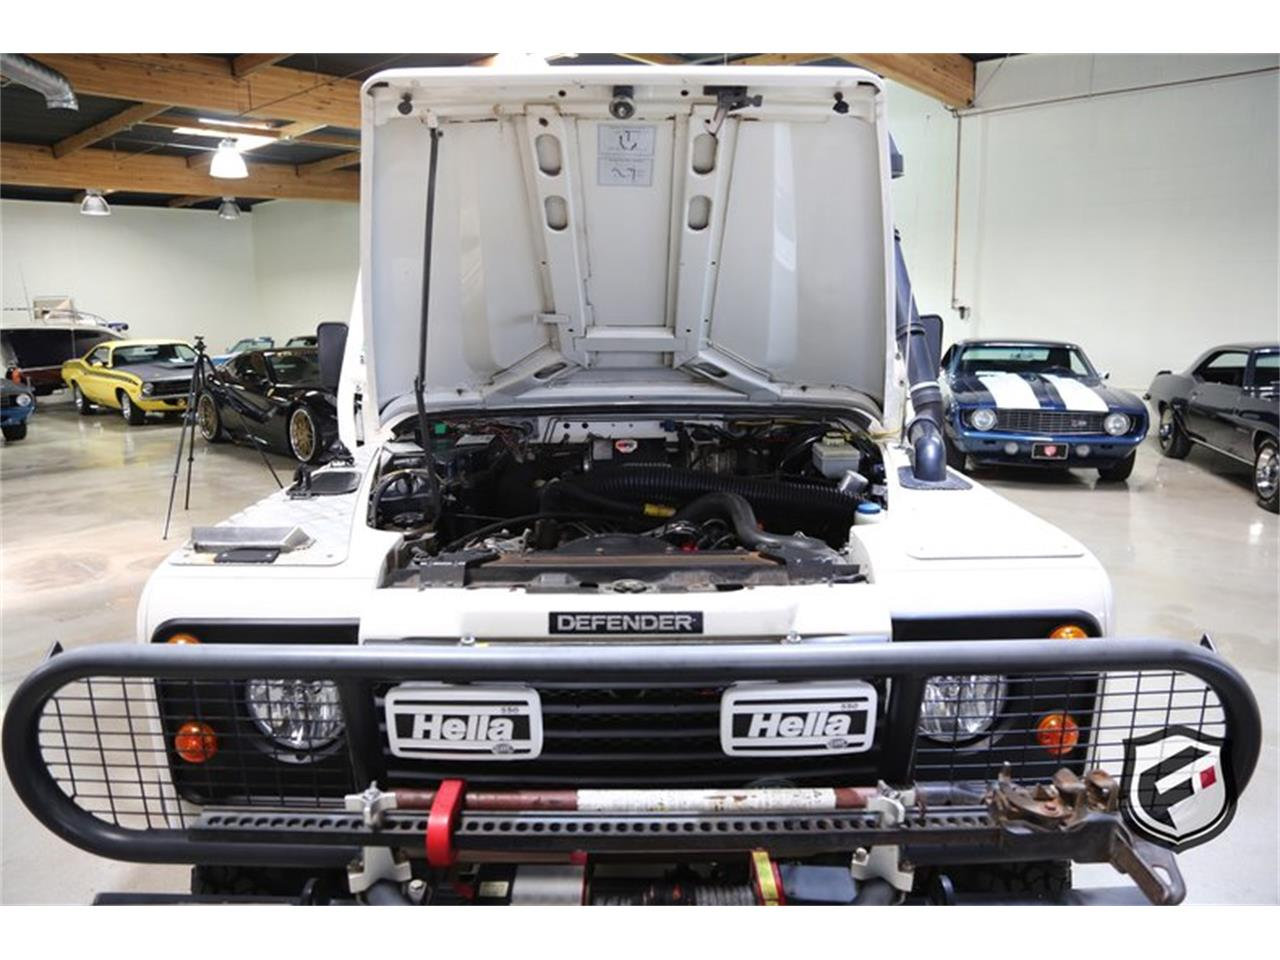 Large Picture of 1993 Defender located in Chatsworth California - LGT5